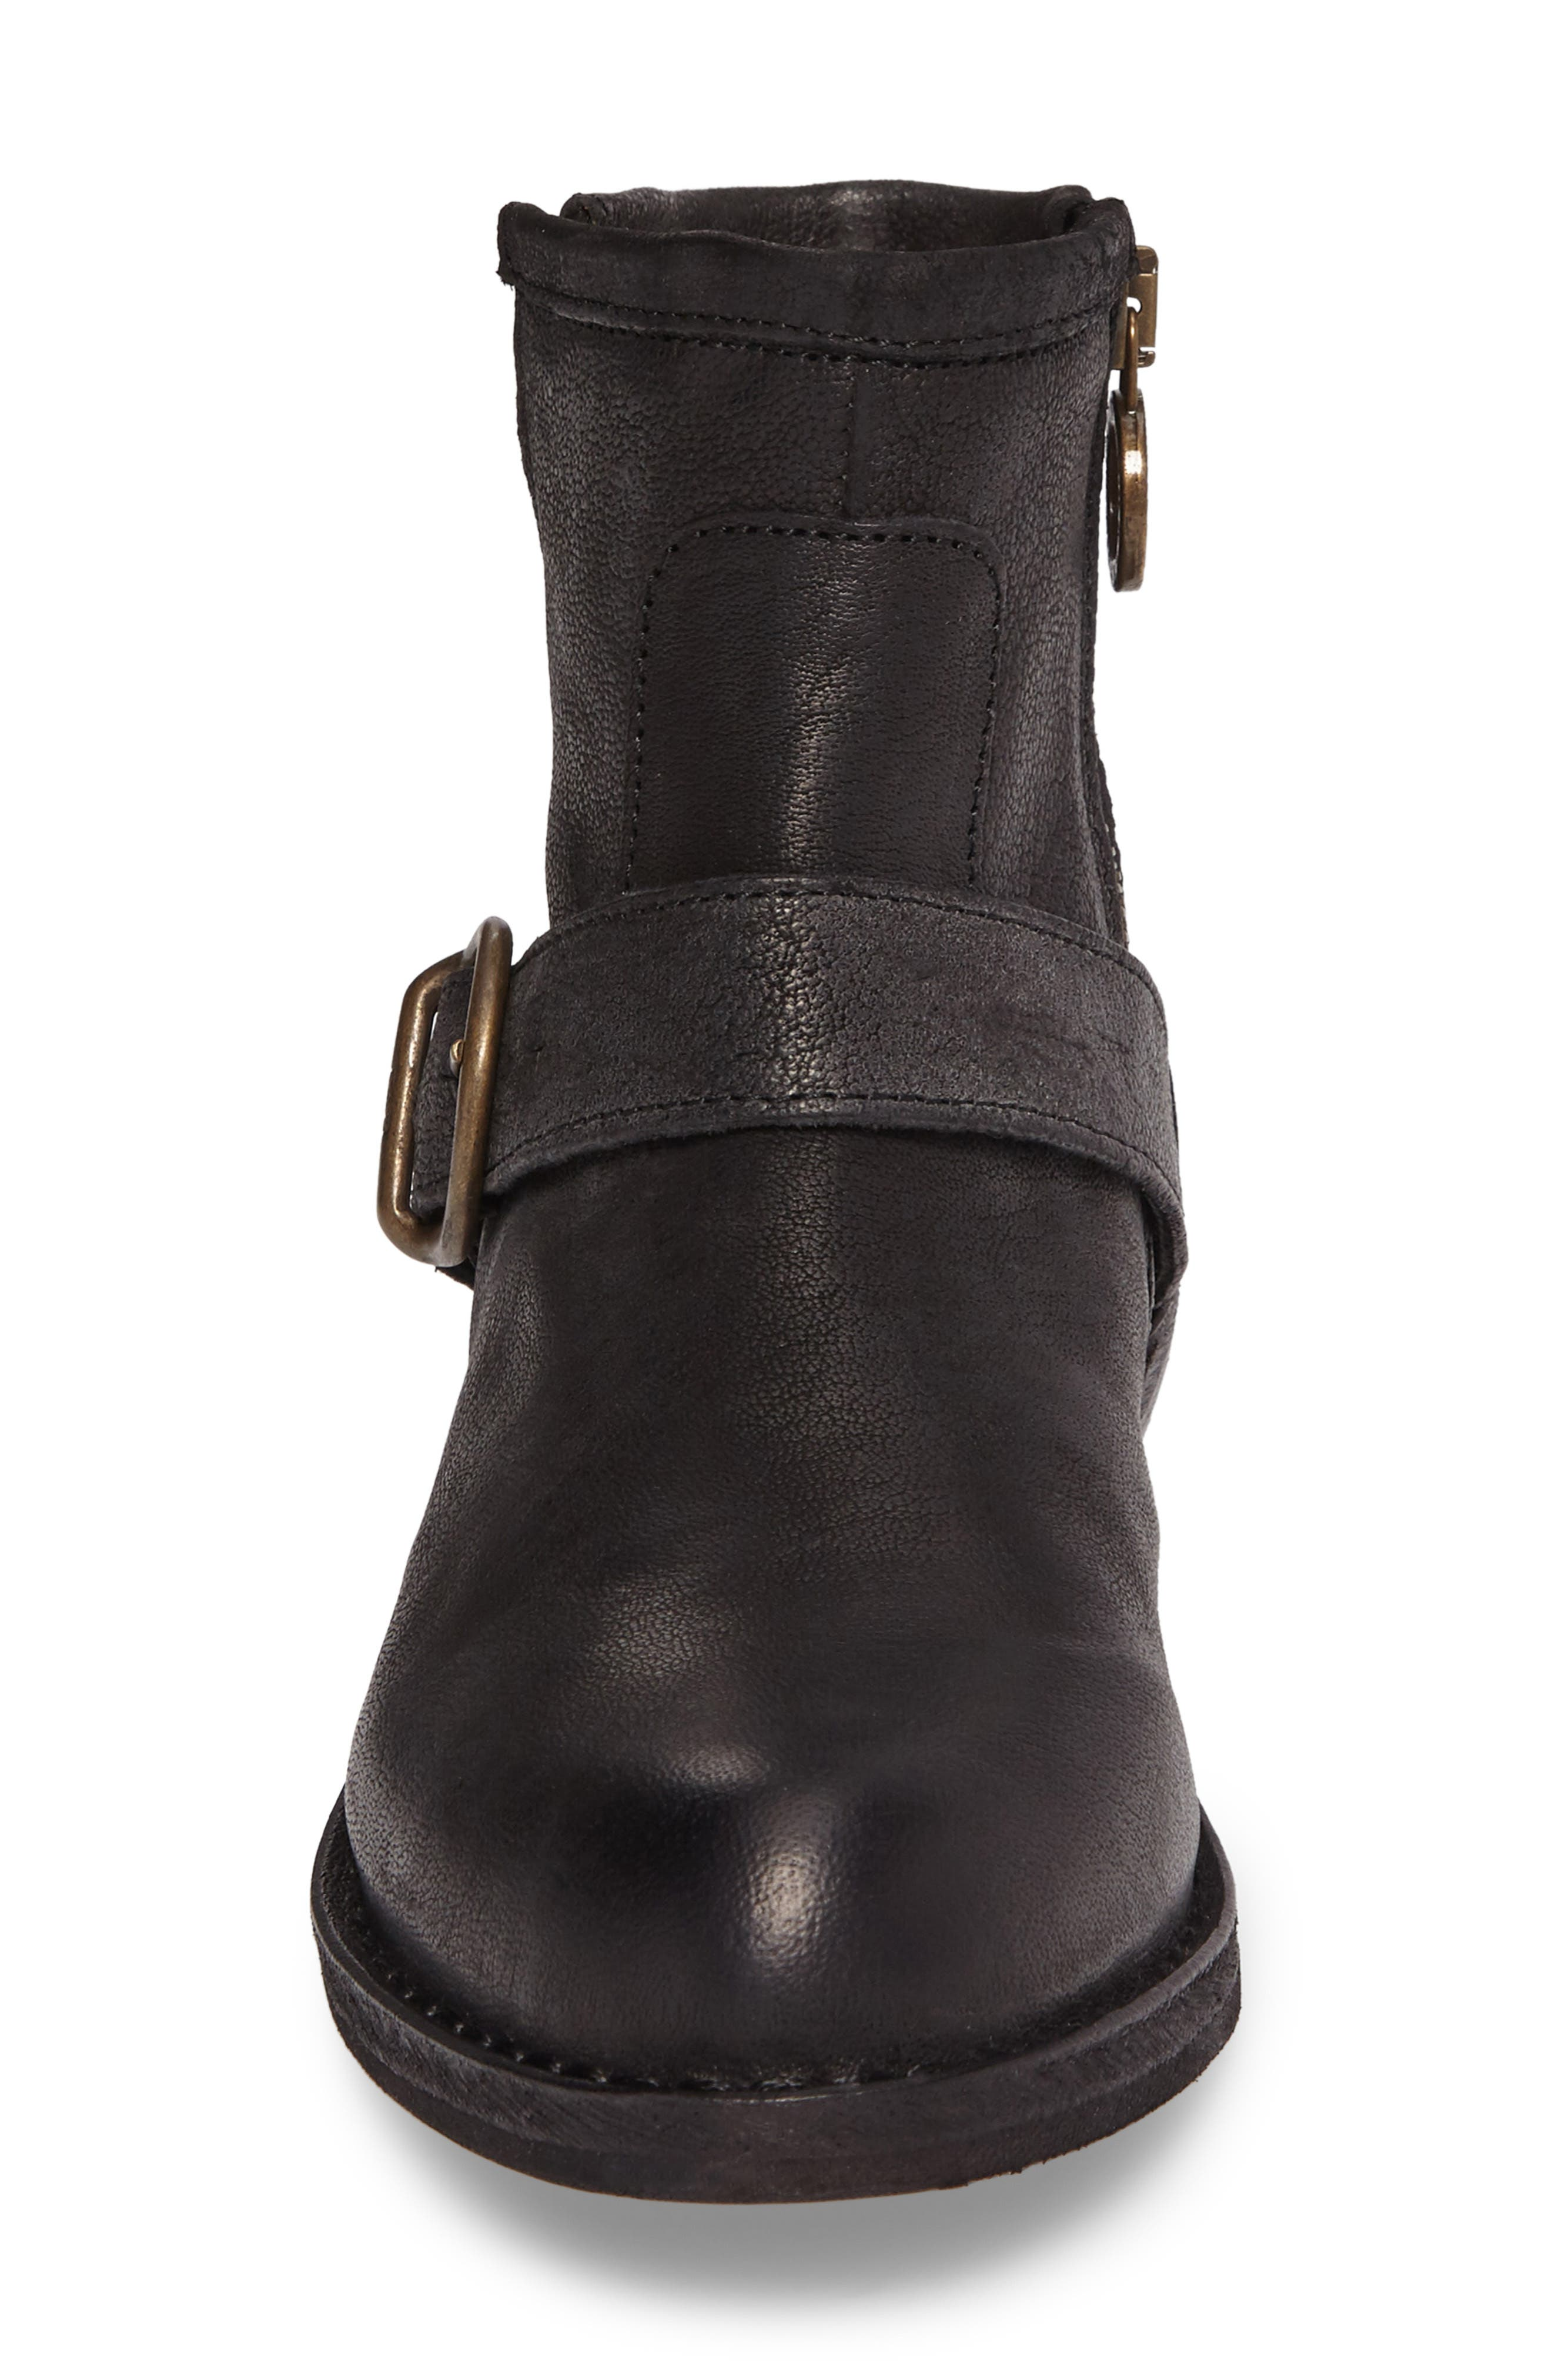 FIORENTINI + BAKER,                             'Chad' Textured Leather Bootie,                             Alternate thumbnail 4, color,                             002